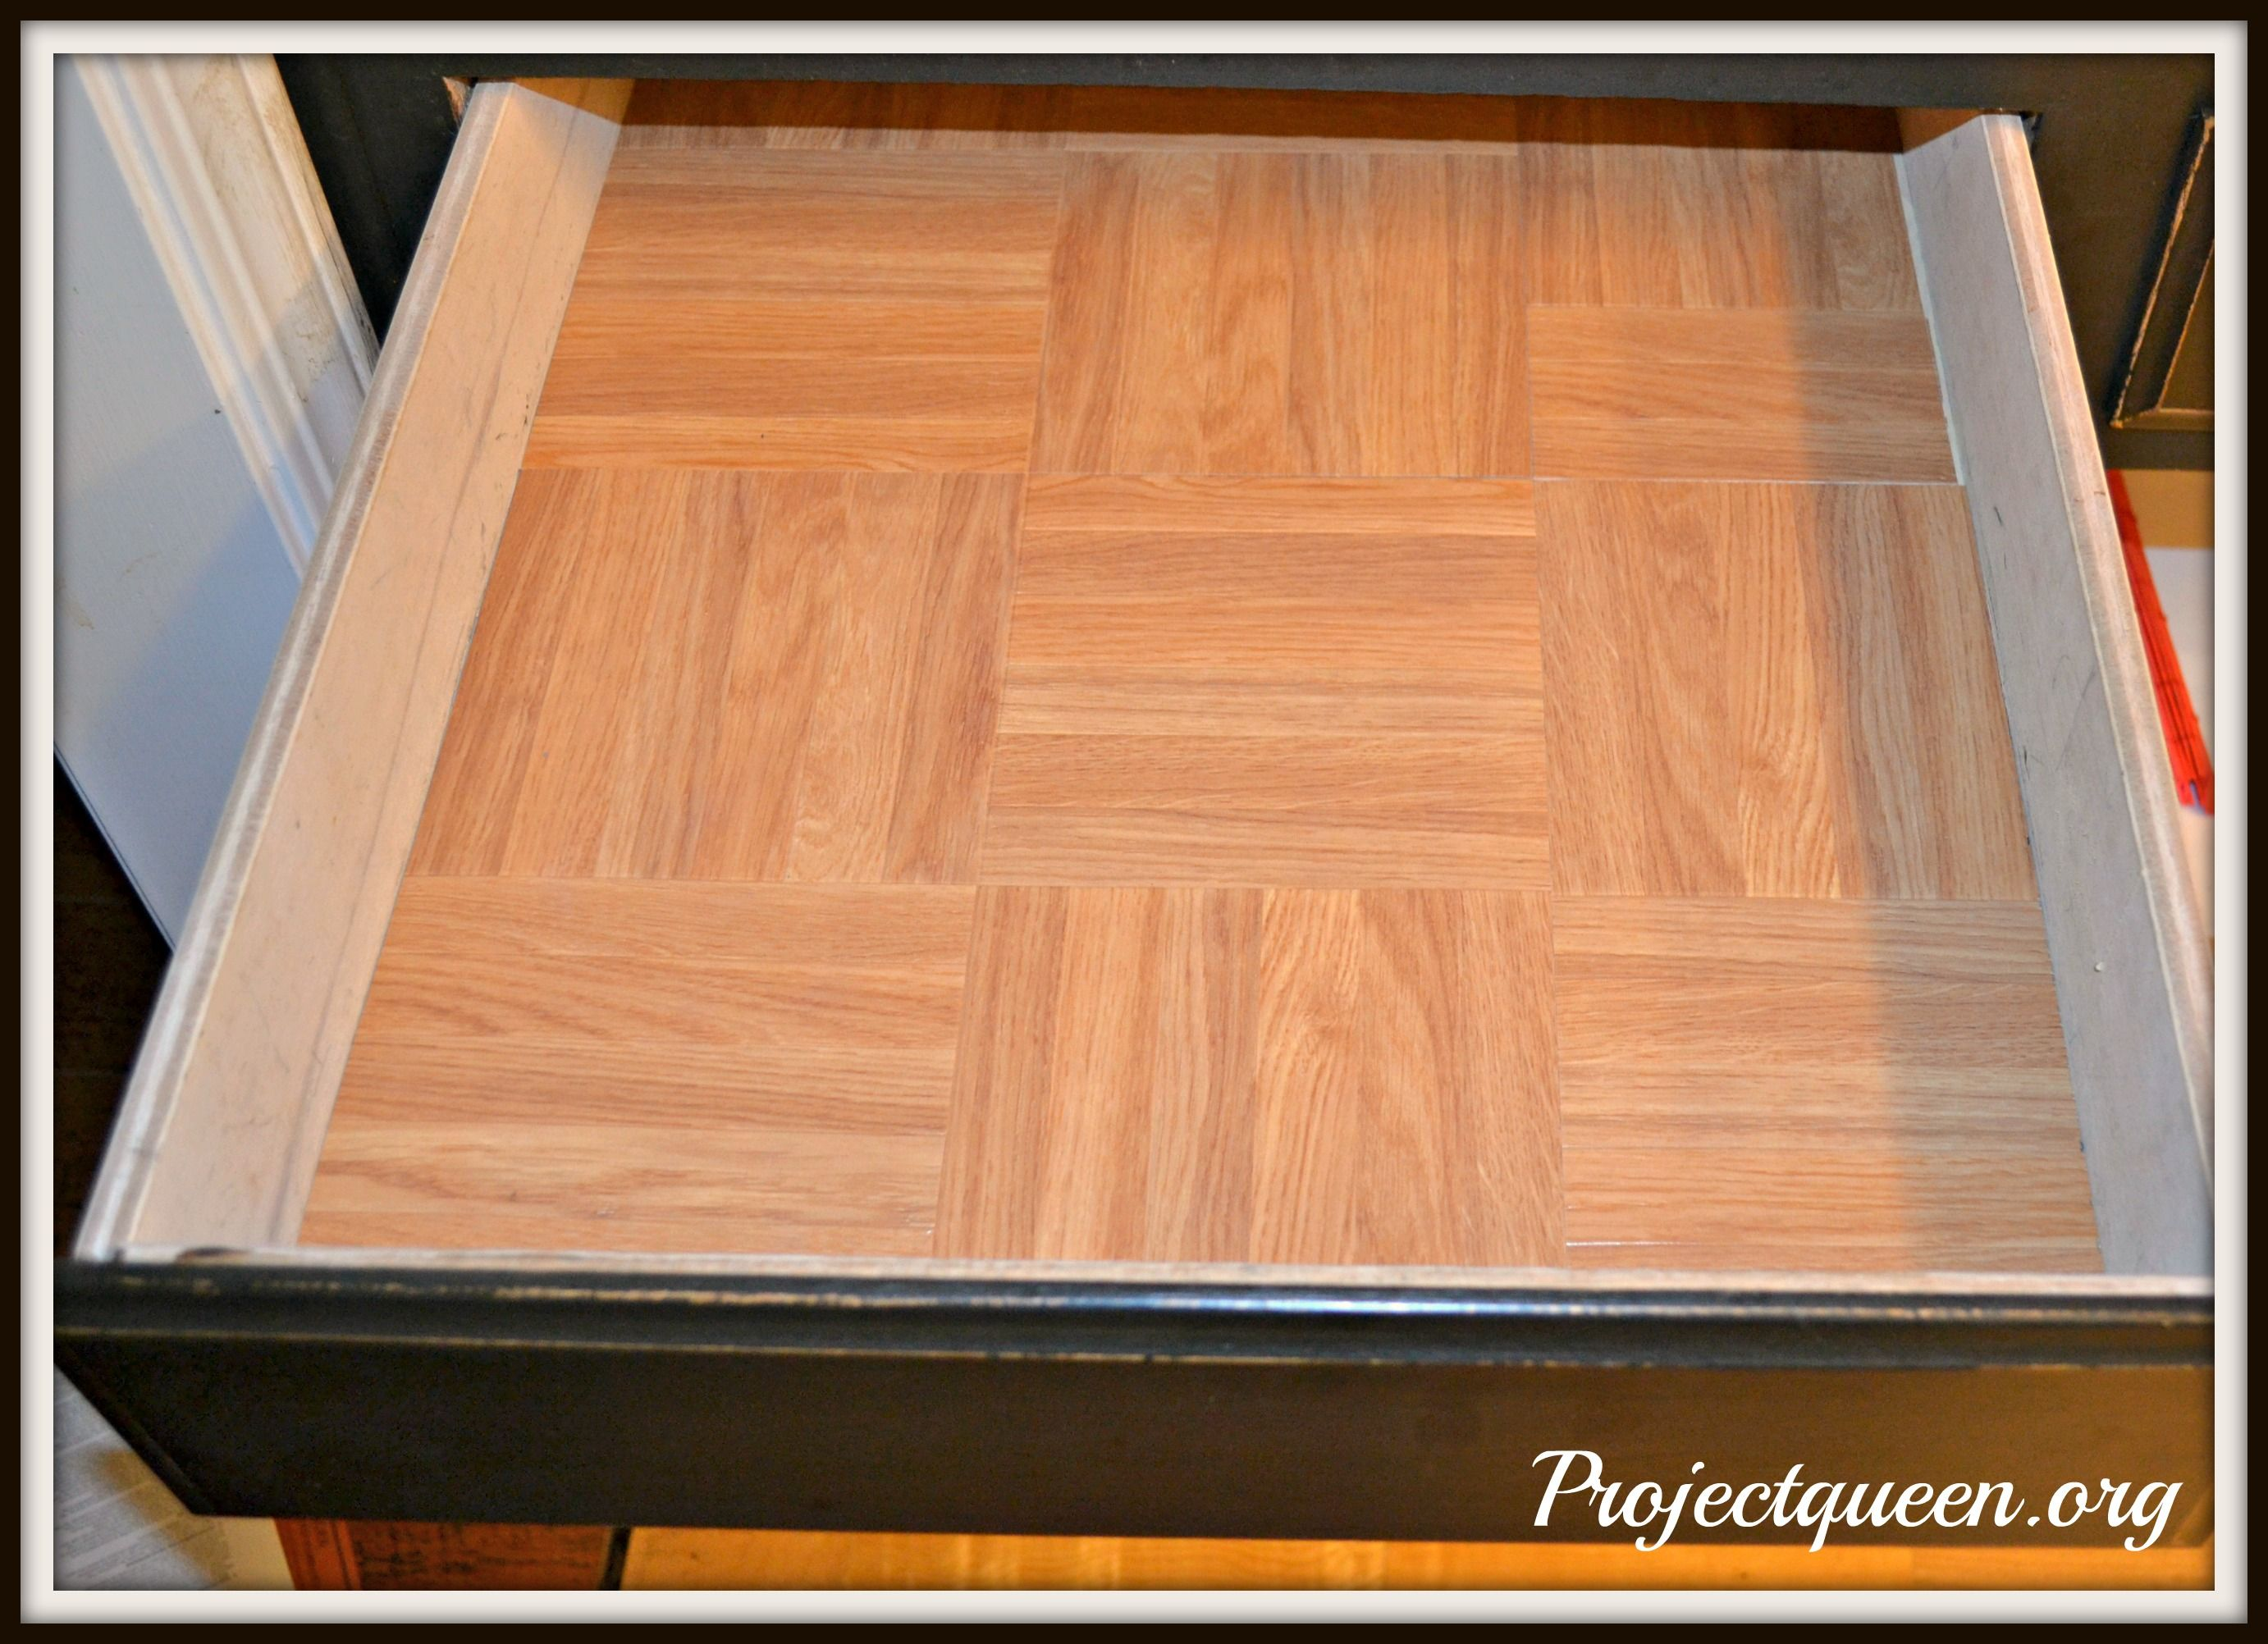 Line Your Drawers With Peel And Stick Linoleum Tiles Great Idea Inside Kitchen Cabinets